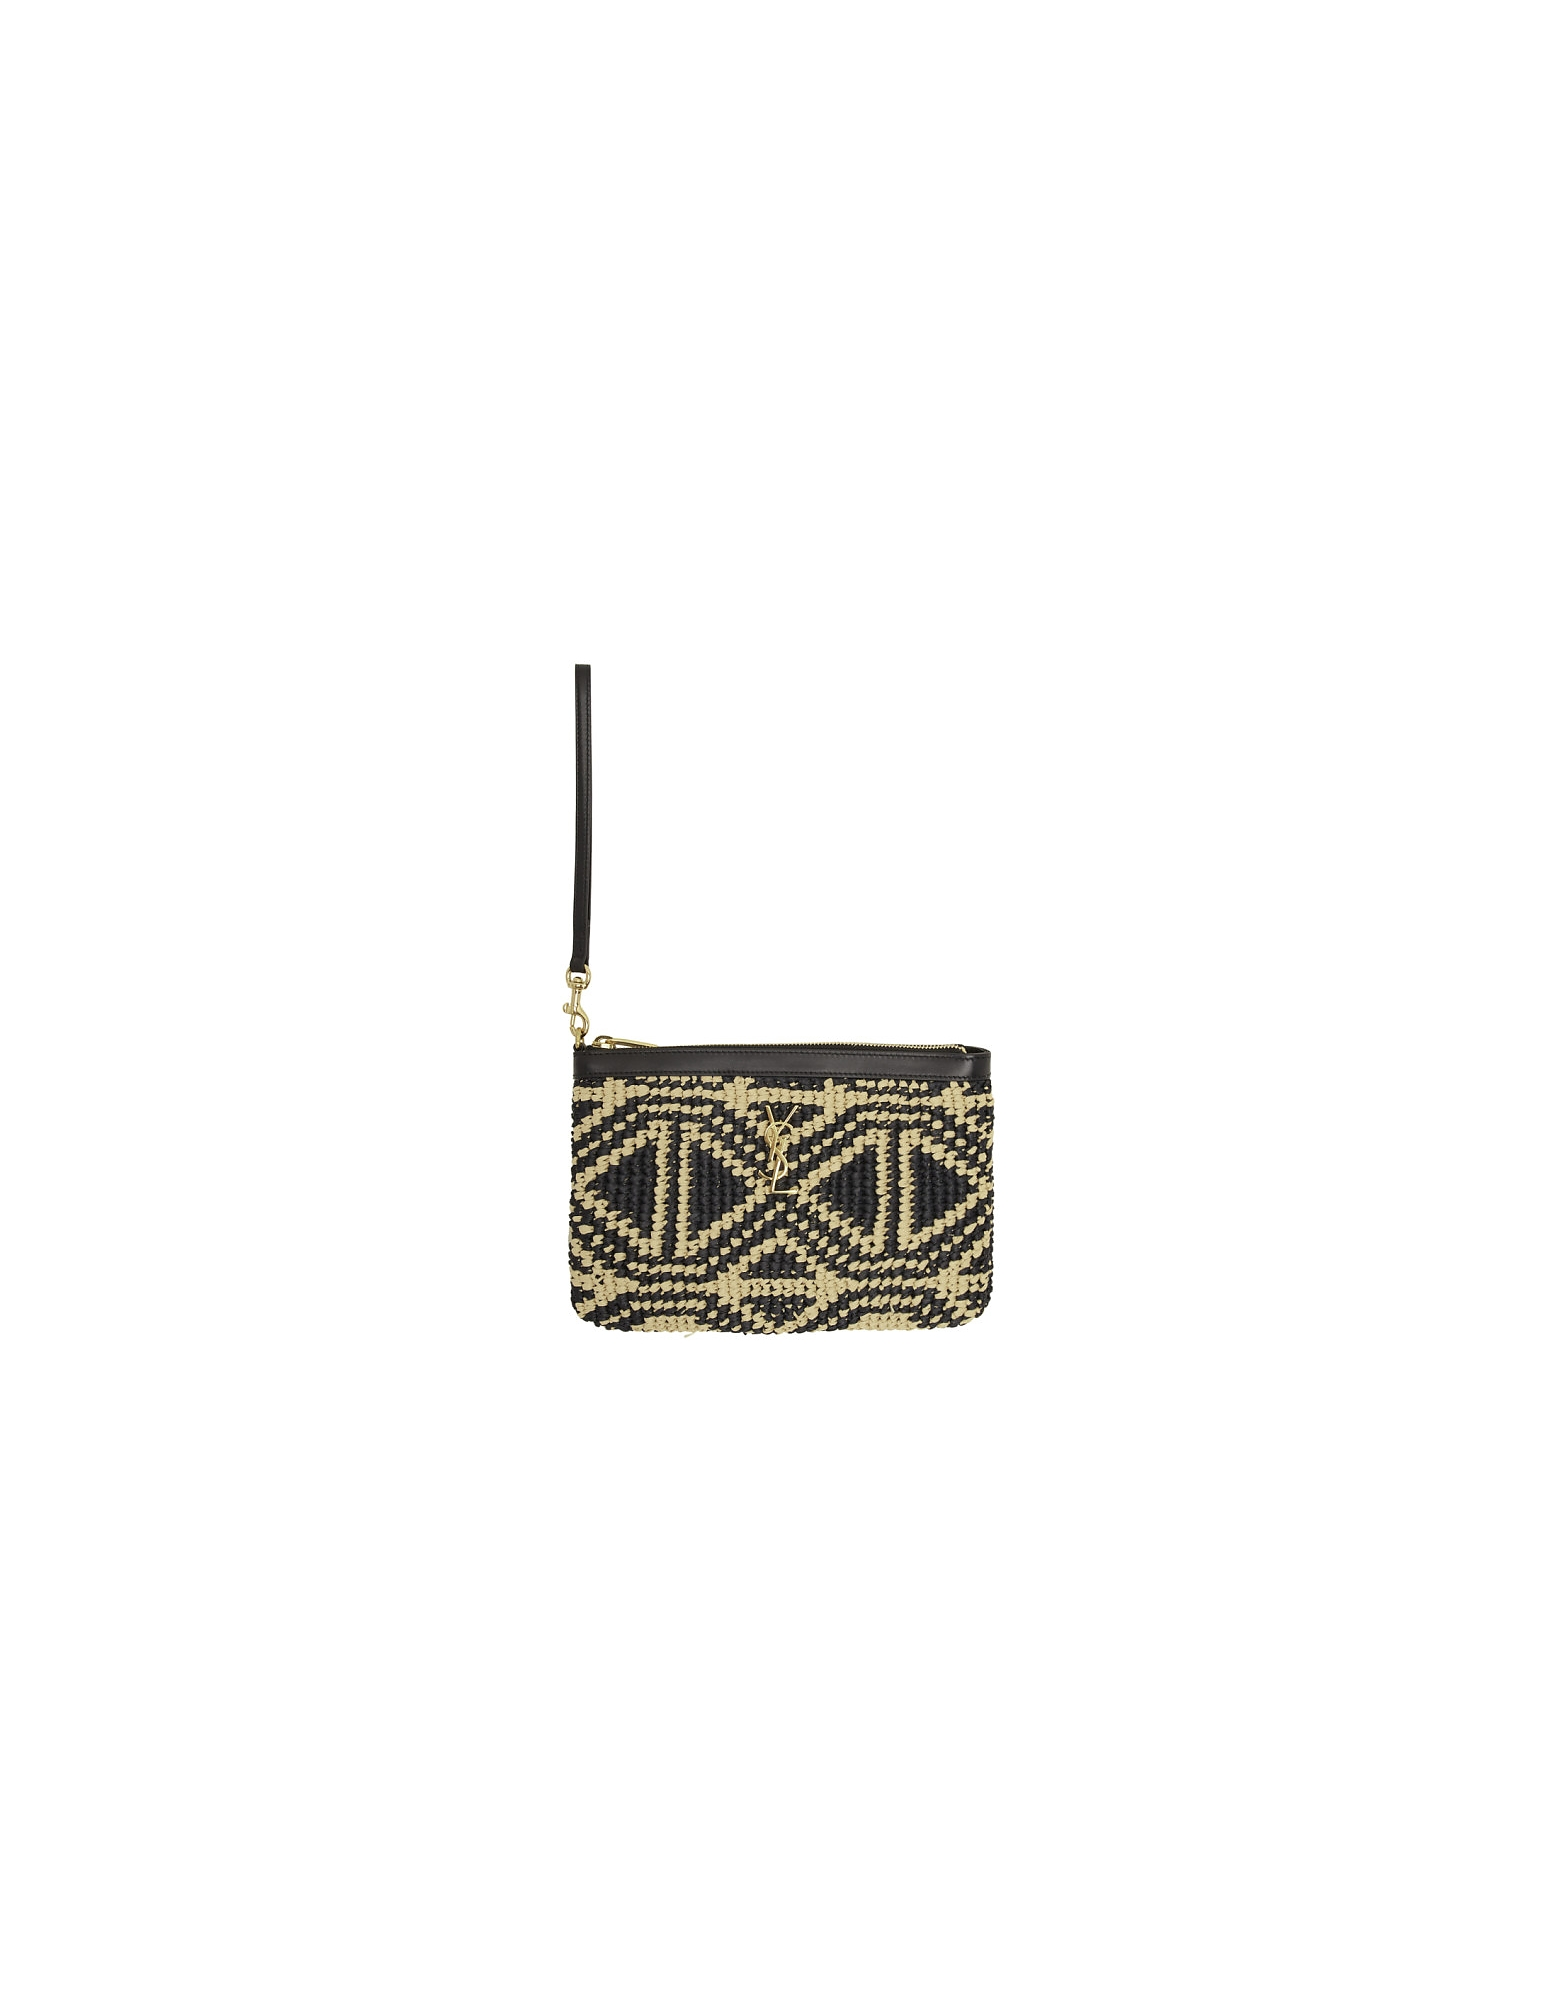 Saint Laurent Designer Handbags, Black and Beige Raffia Monogramme Pouch